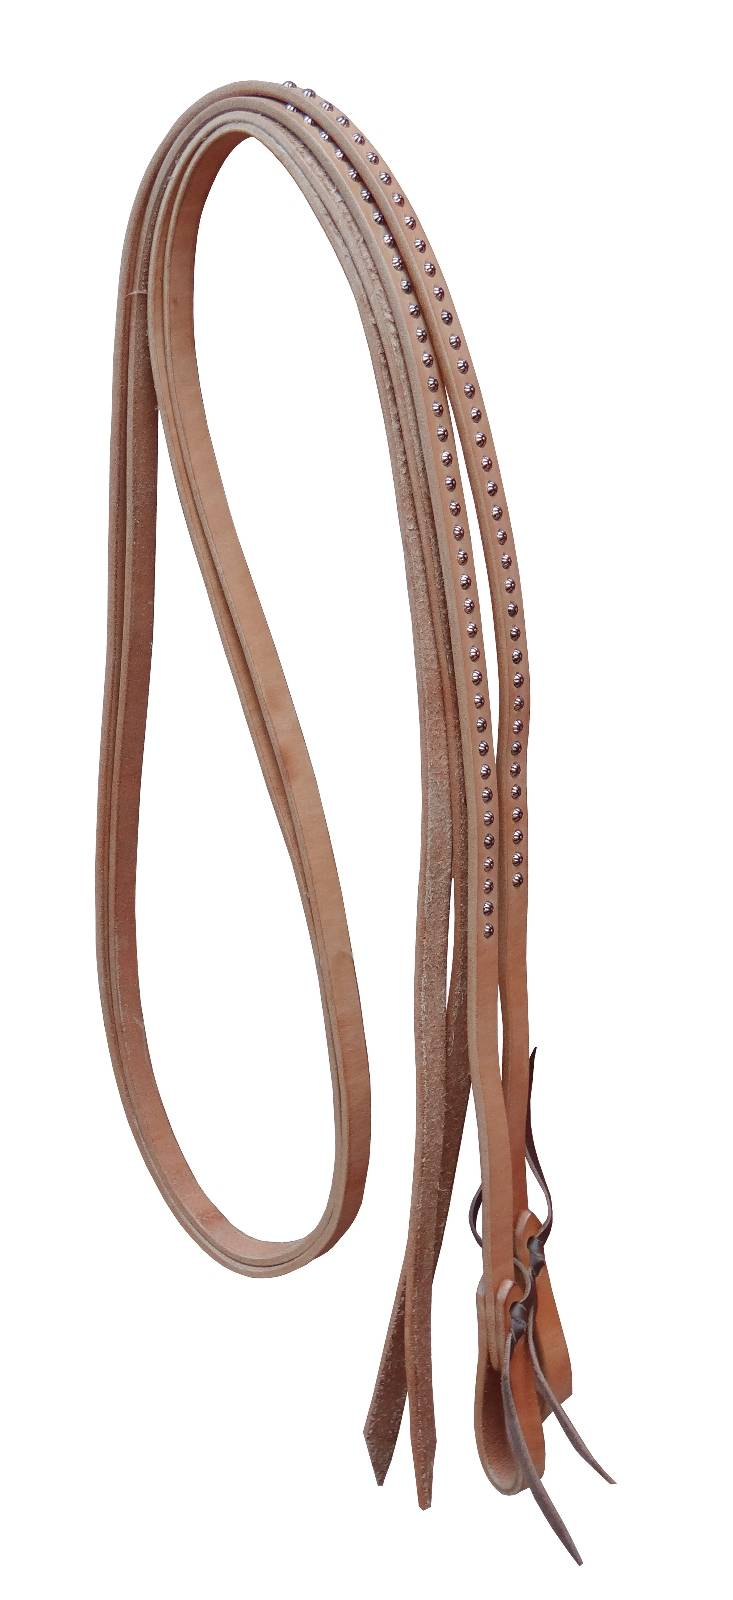 Turn-Two Antique Spot Split Reins